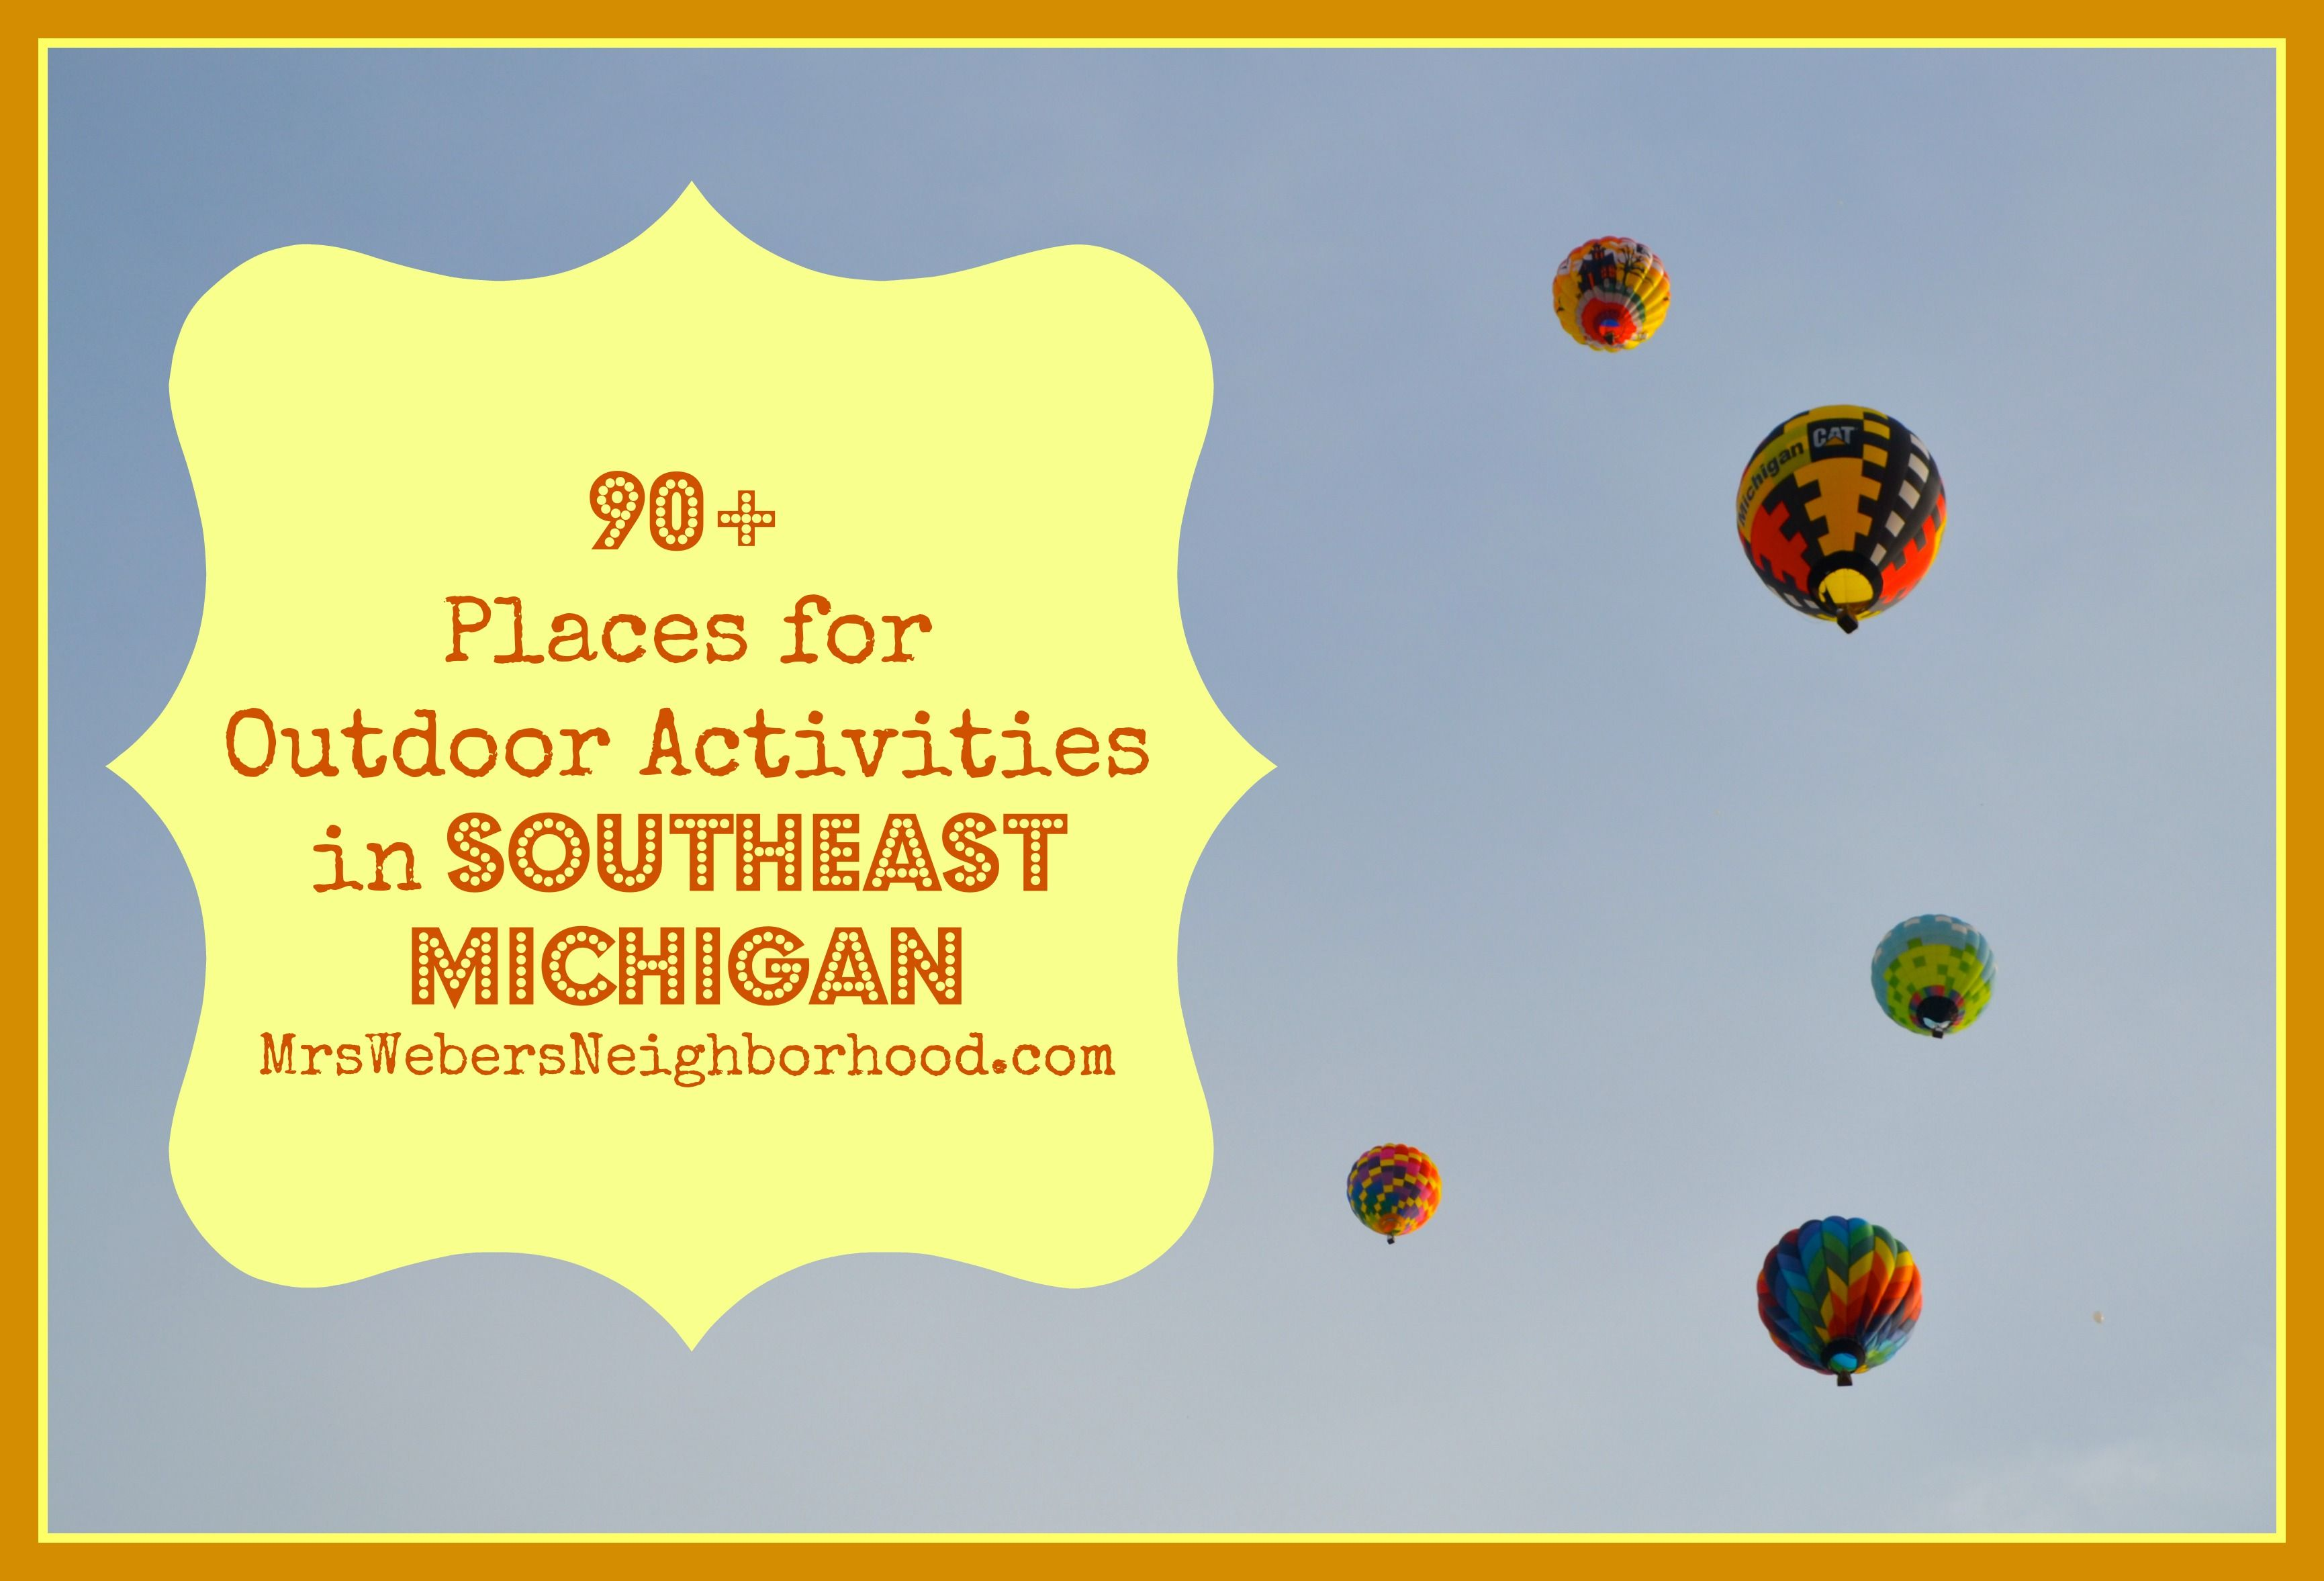 Start planning for summer with this big list of places for outdoor